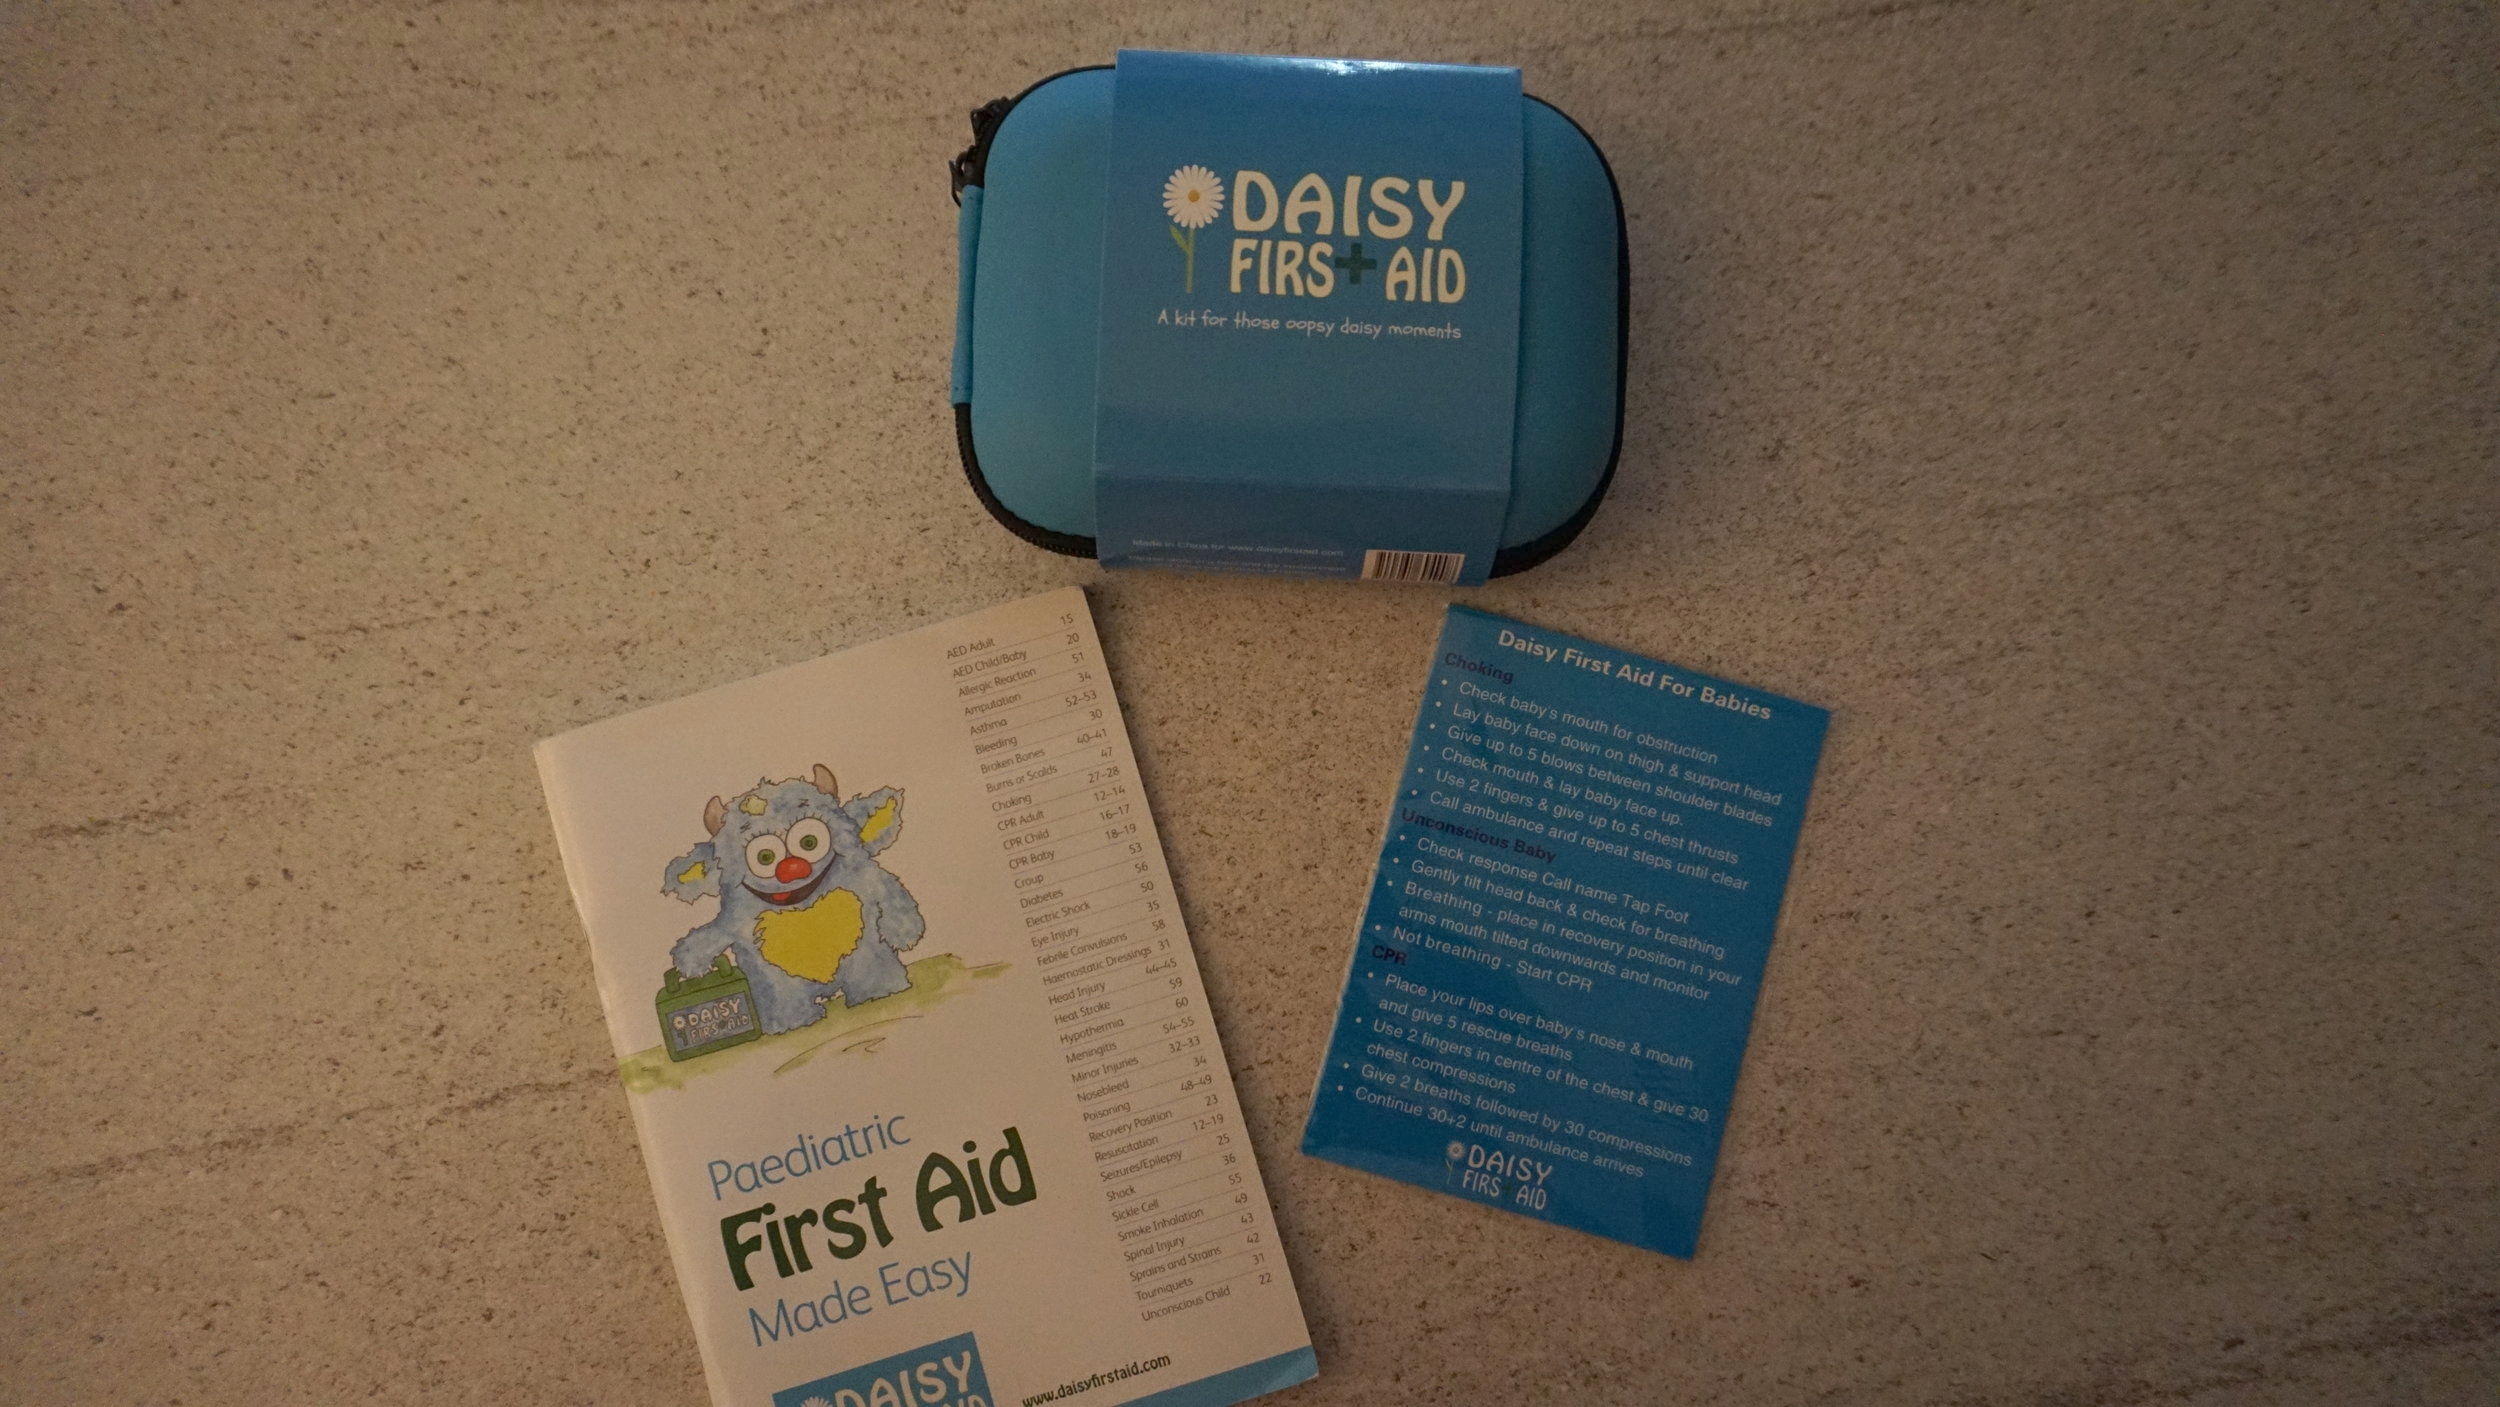 THE DAISY FIRST AID KIT - THE PERFECT SIZE FOR A NAPPY BAG